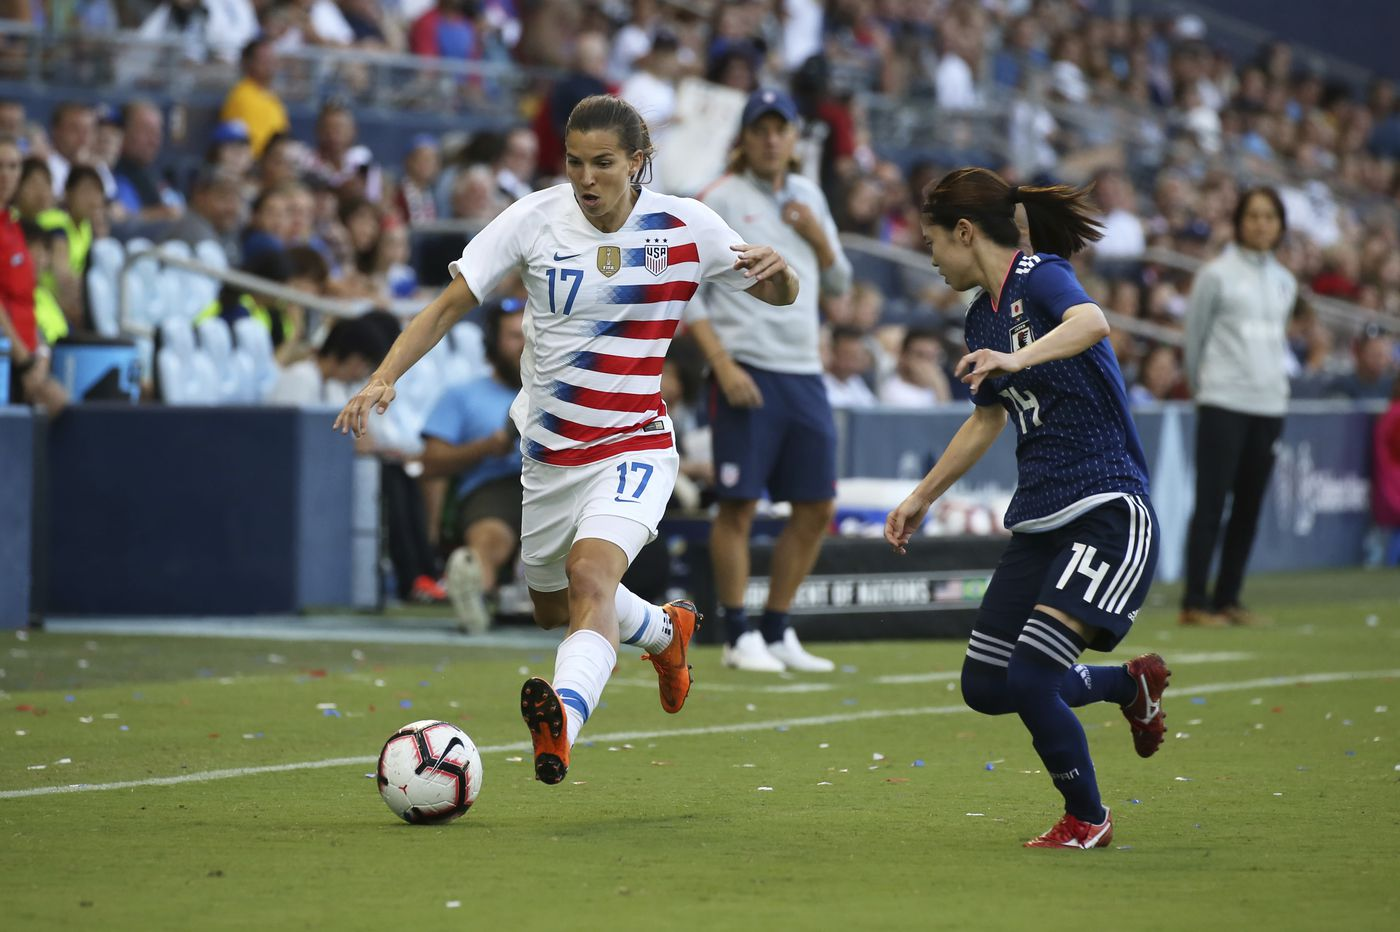 USWNT star Tobin Heath is becoming as comfortable with fame as she's long been with a soccer ball